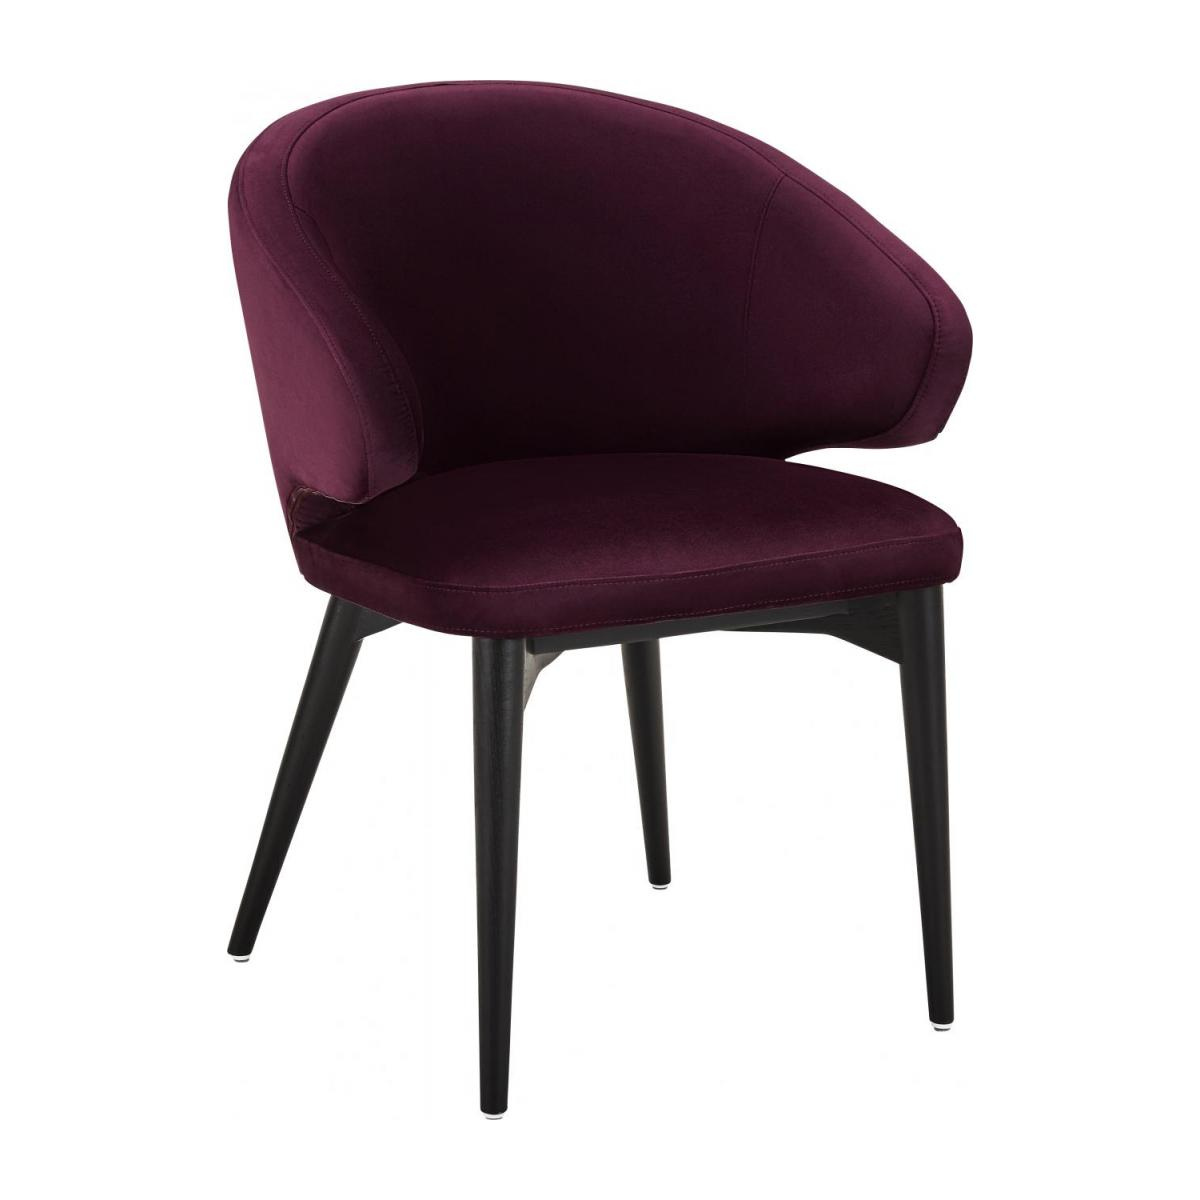 Chaise en velours - Bordeaux n°1